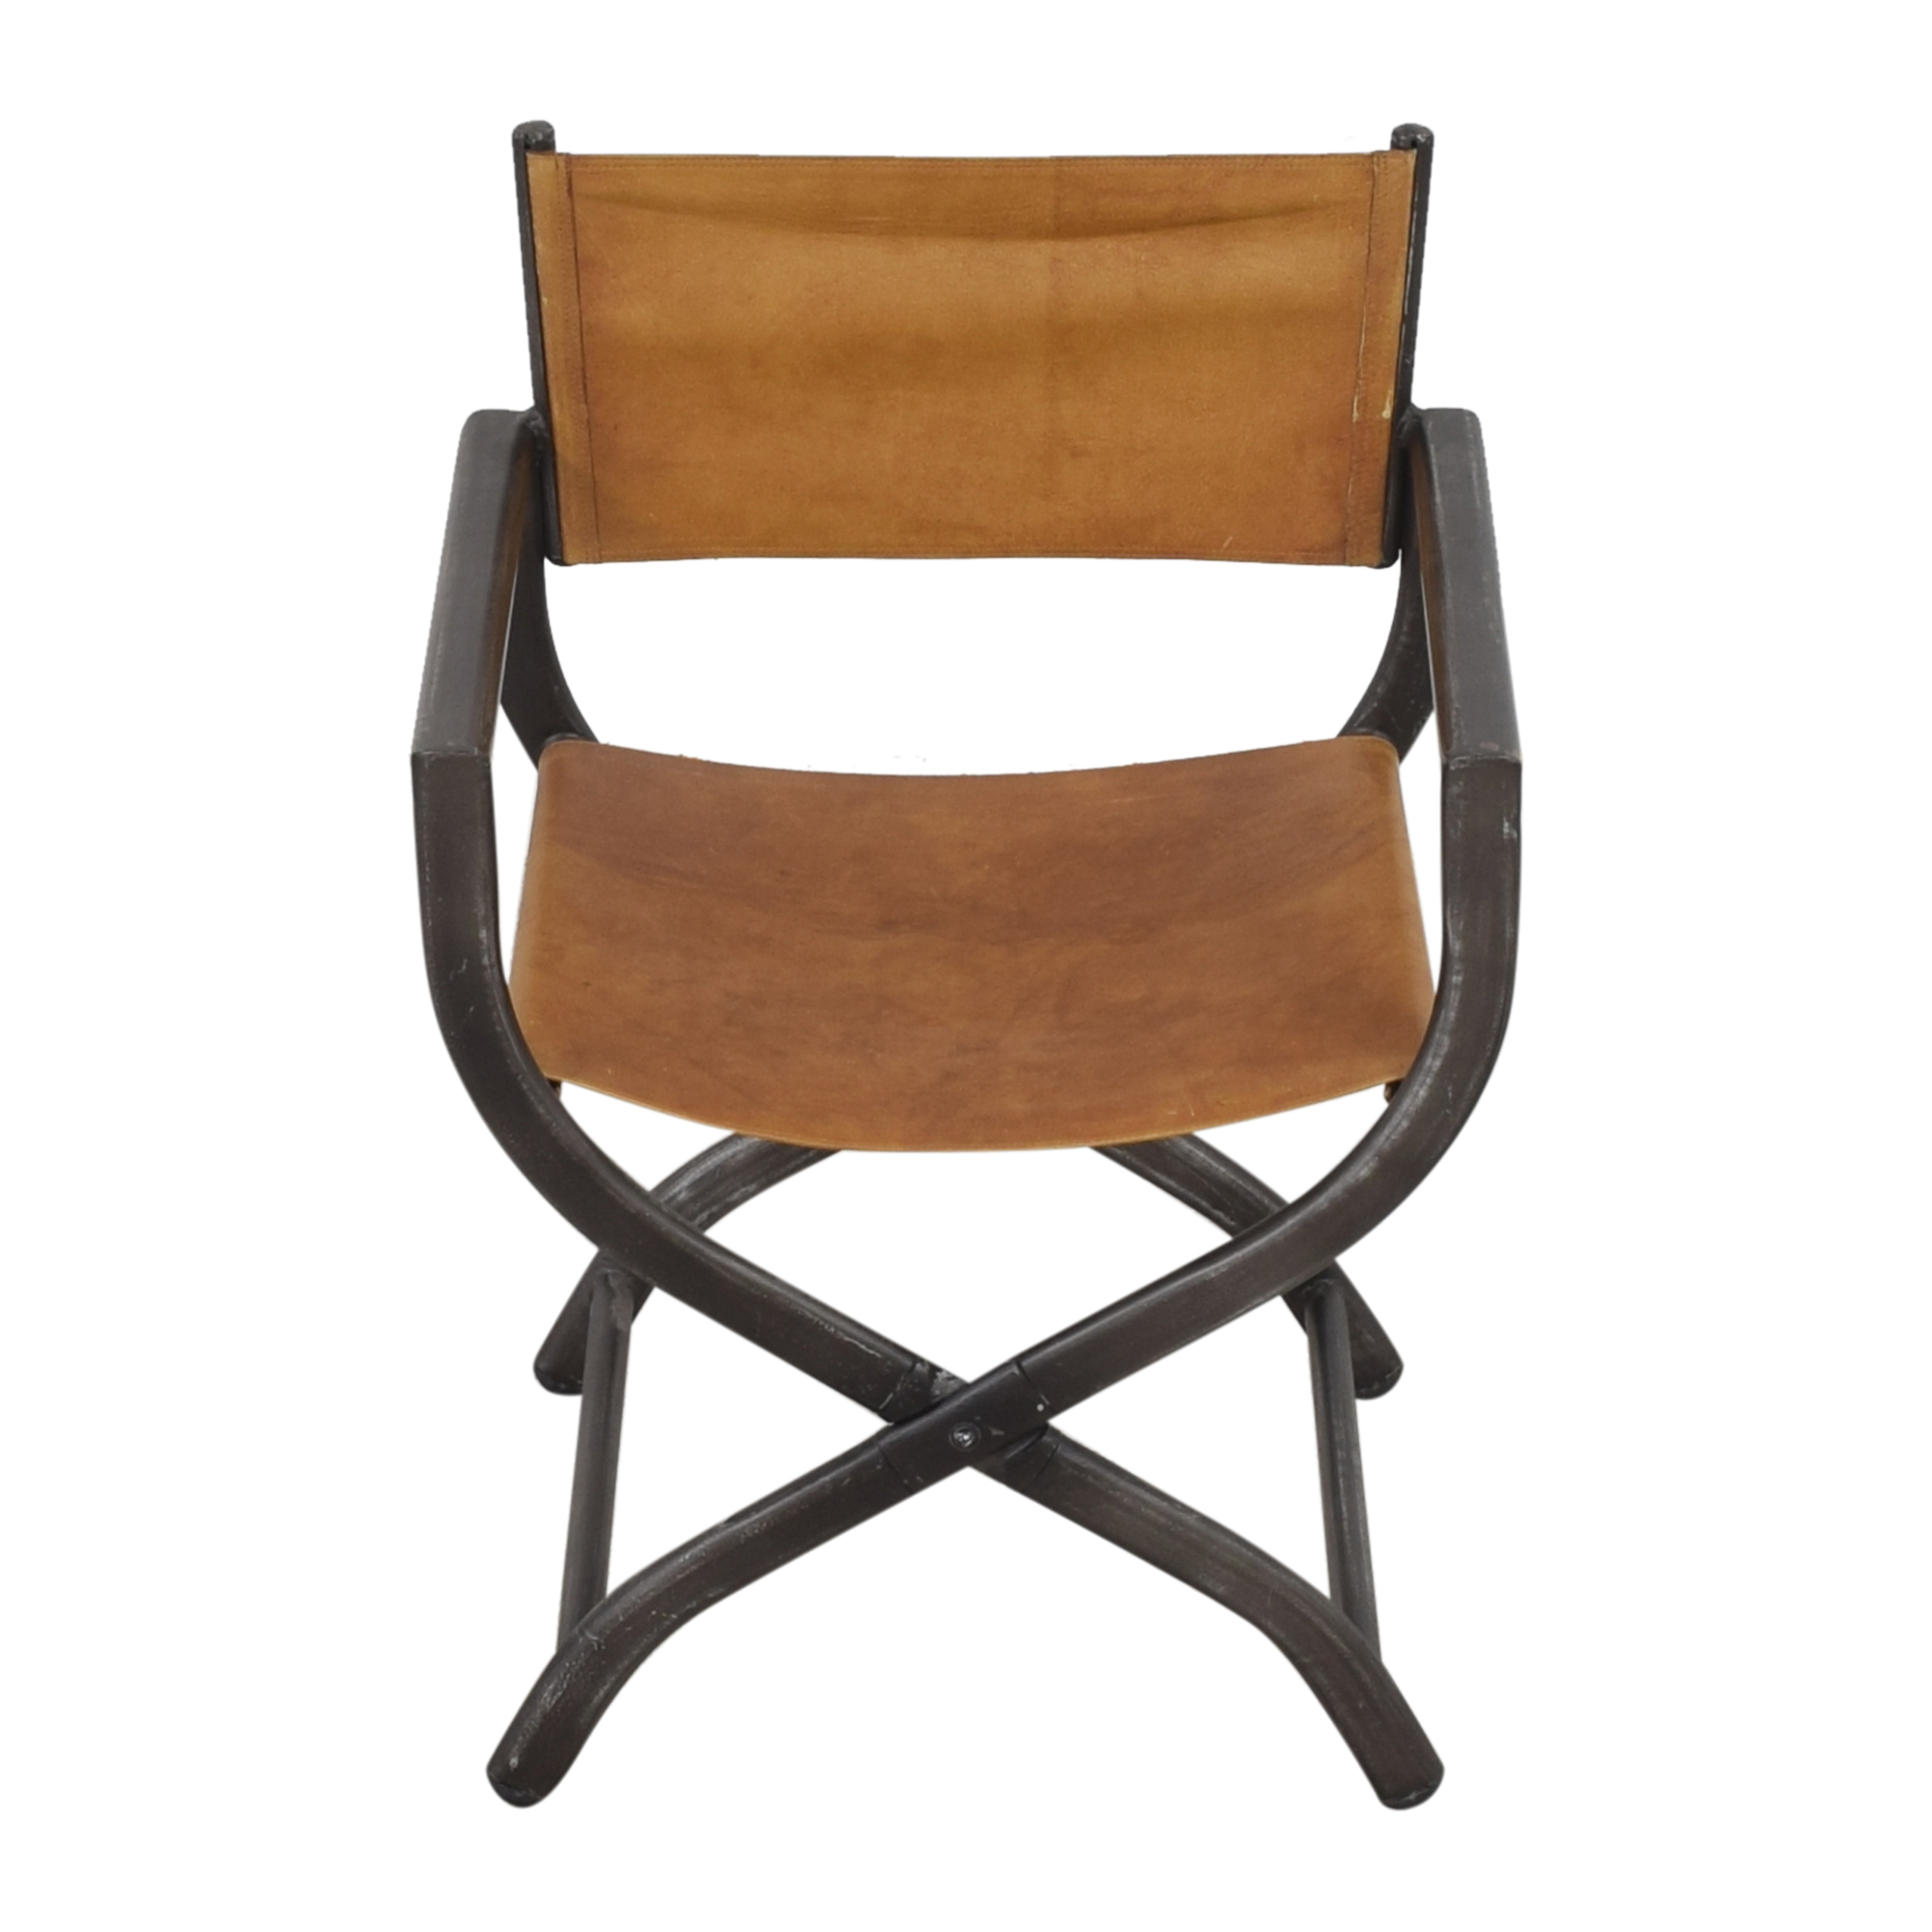 Restoration Hardware Restoration Hardware 1970s French Director's Chair